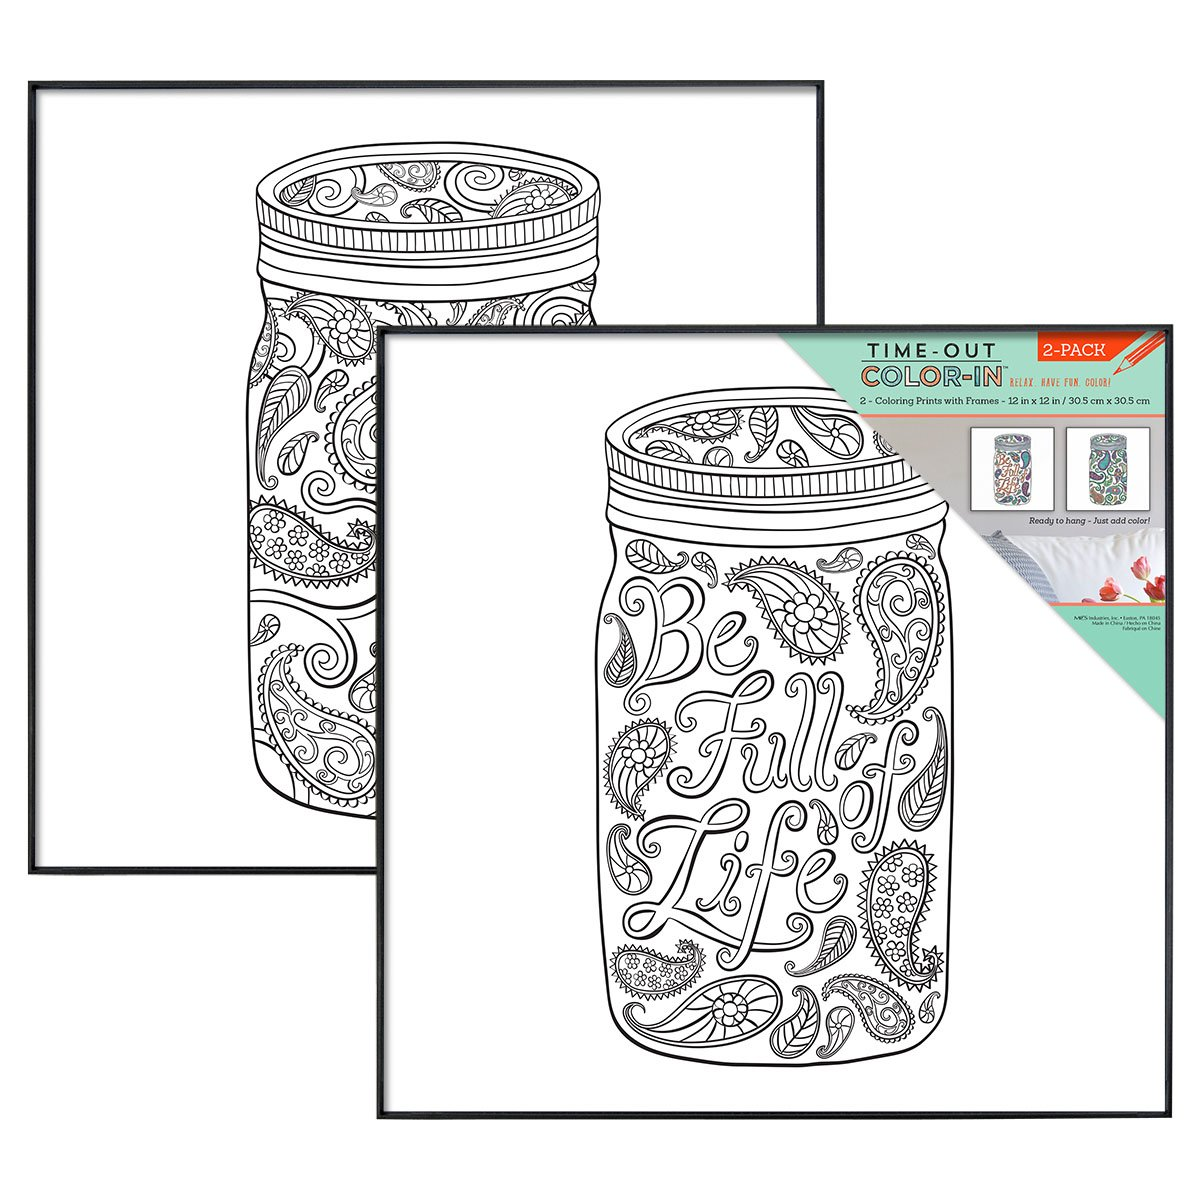 Mcs Time Out Color In 12x12 Inch Framed Adult Coloring Page With Mason Jar Designs 2 Pack Black 65626